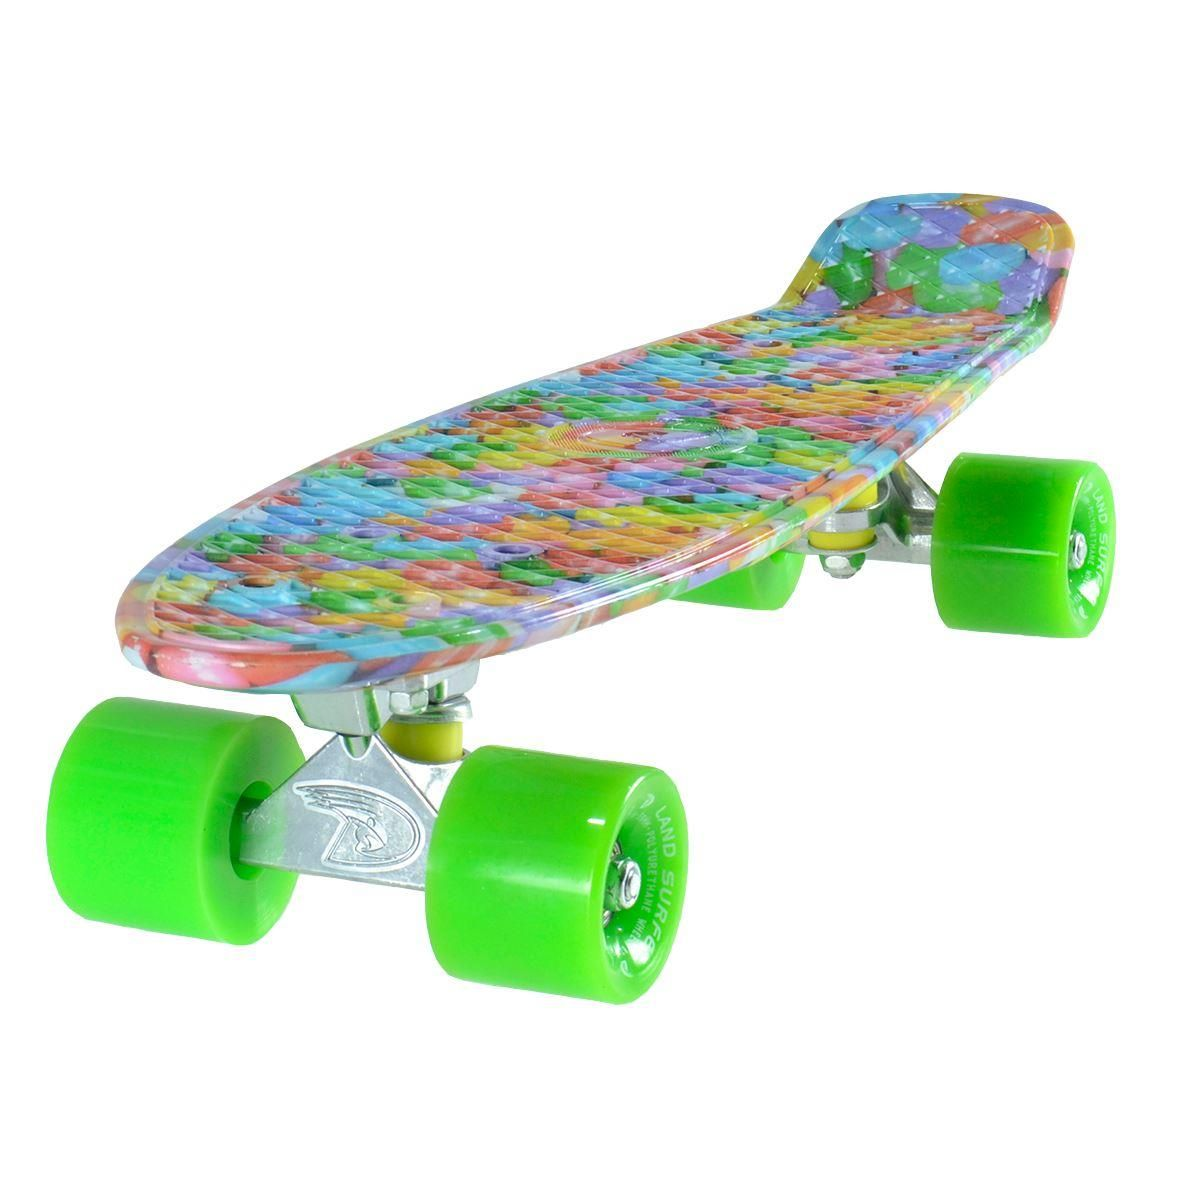 Land Surfer Cruiser Candy Skateboard Green Wheels